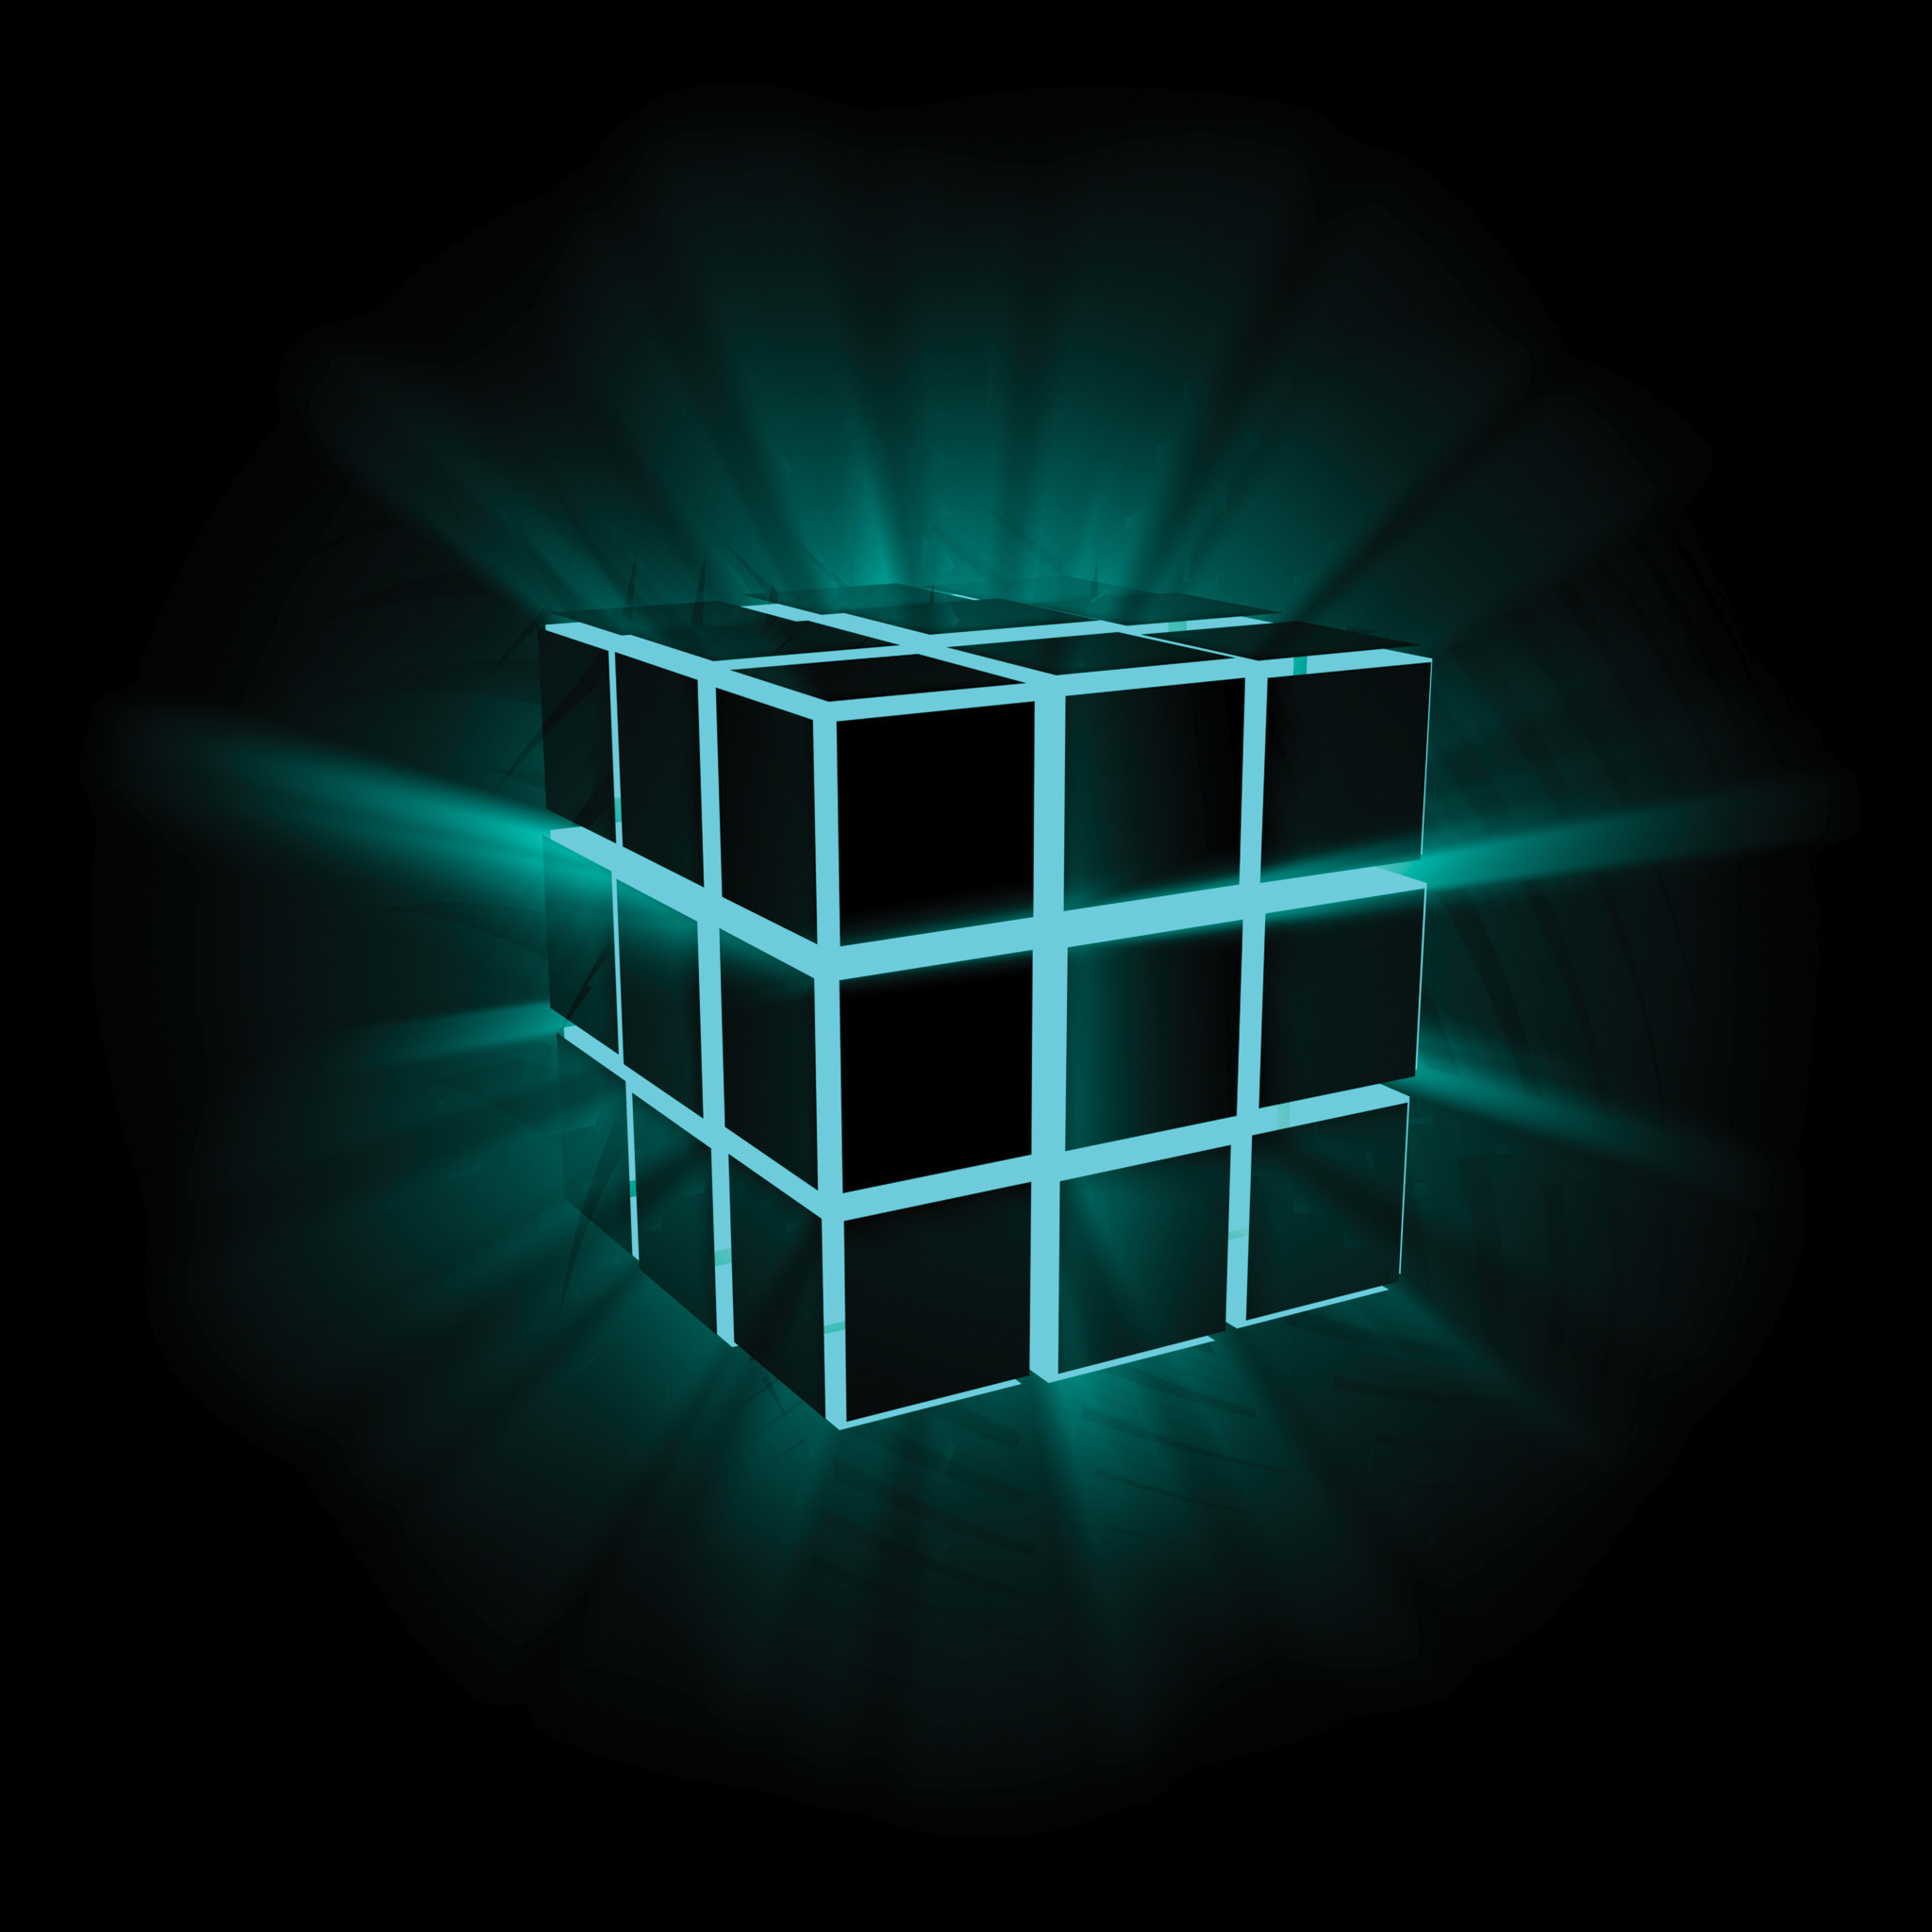 Luminar-Cube-3Wallpapers-iPad